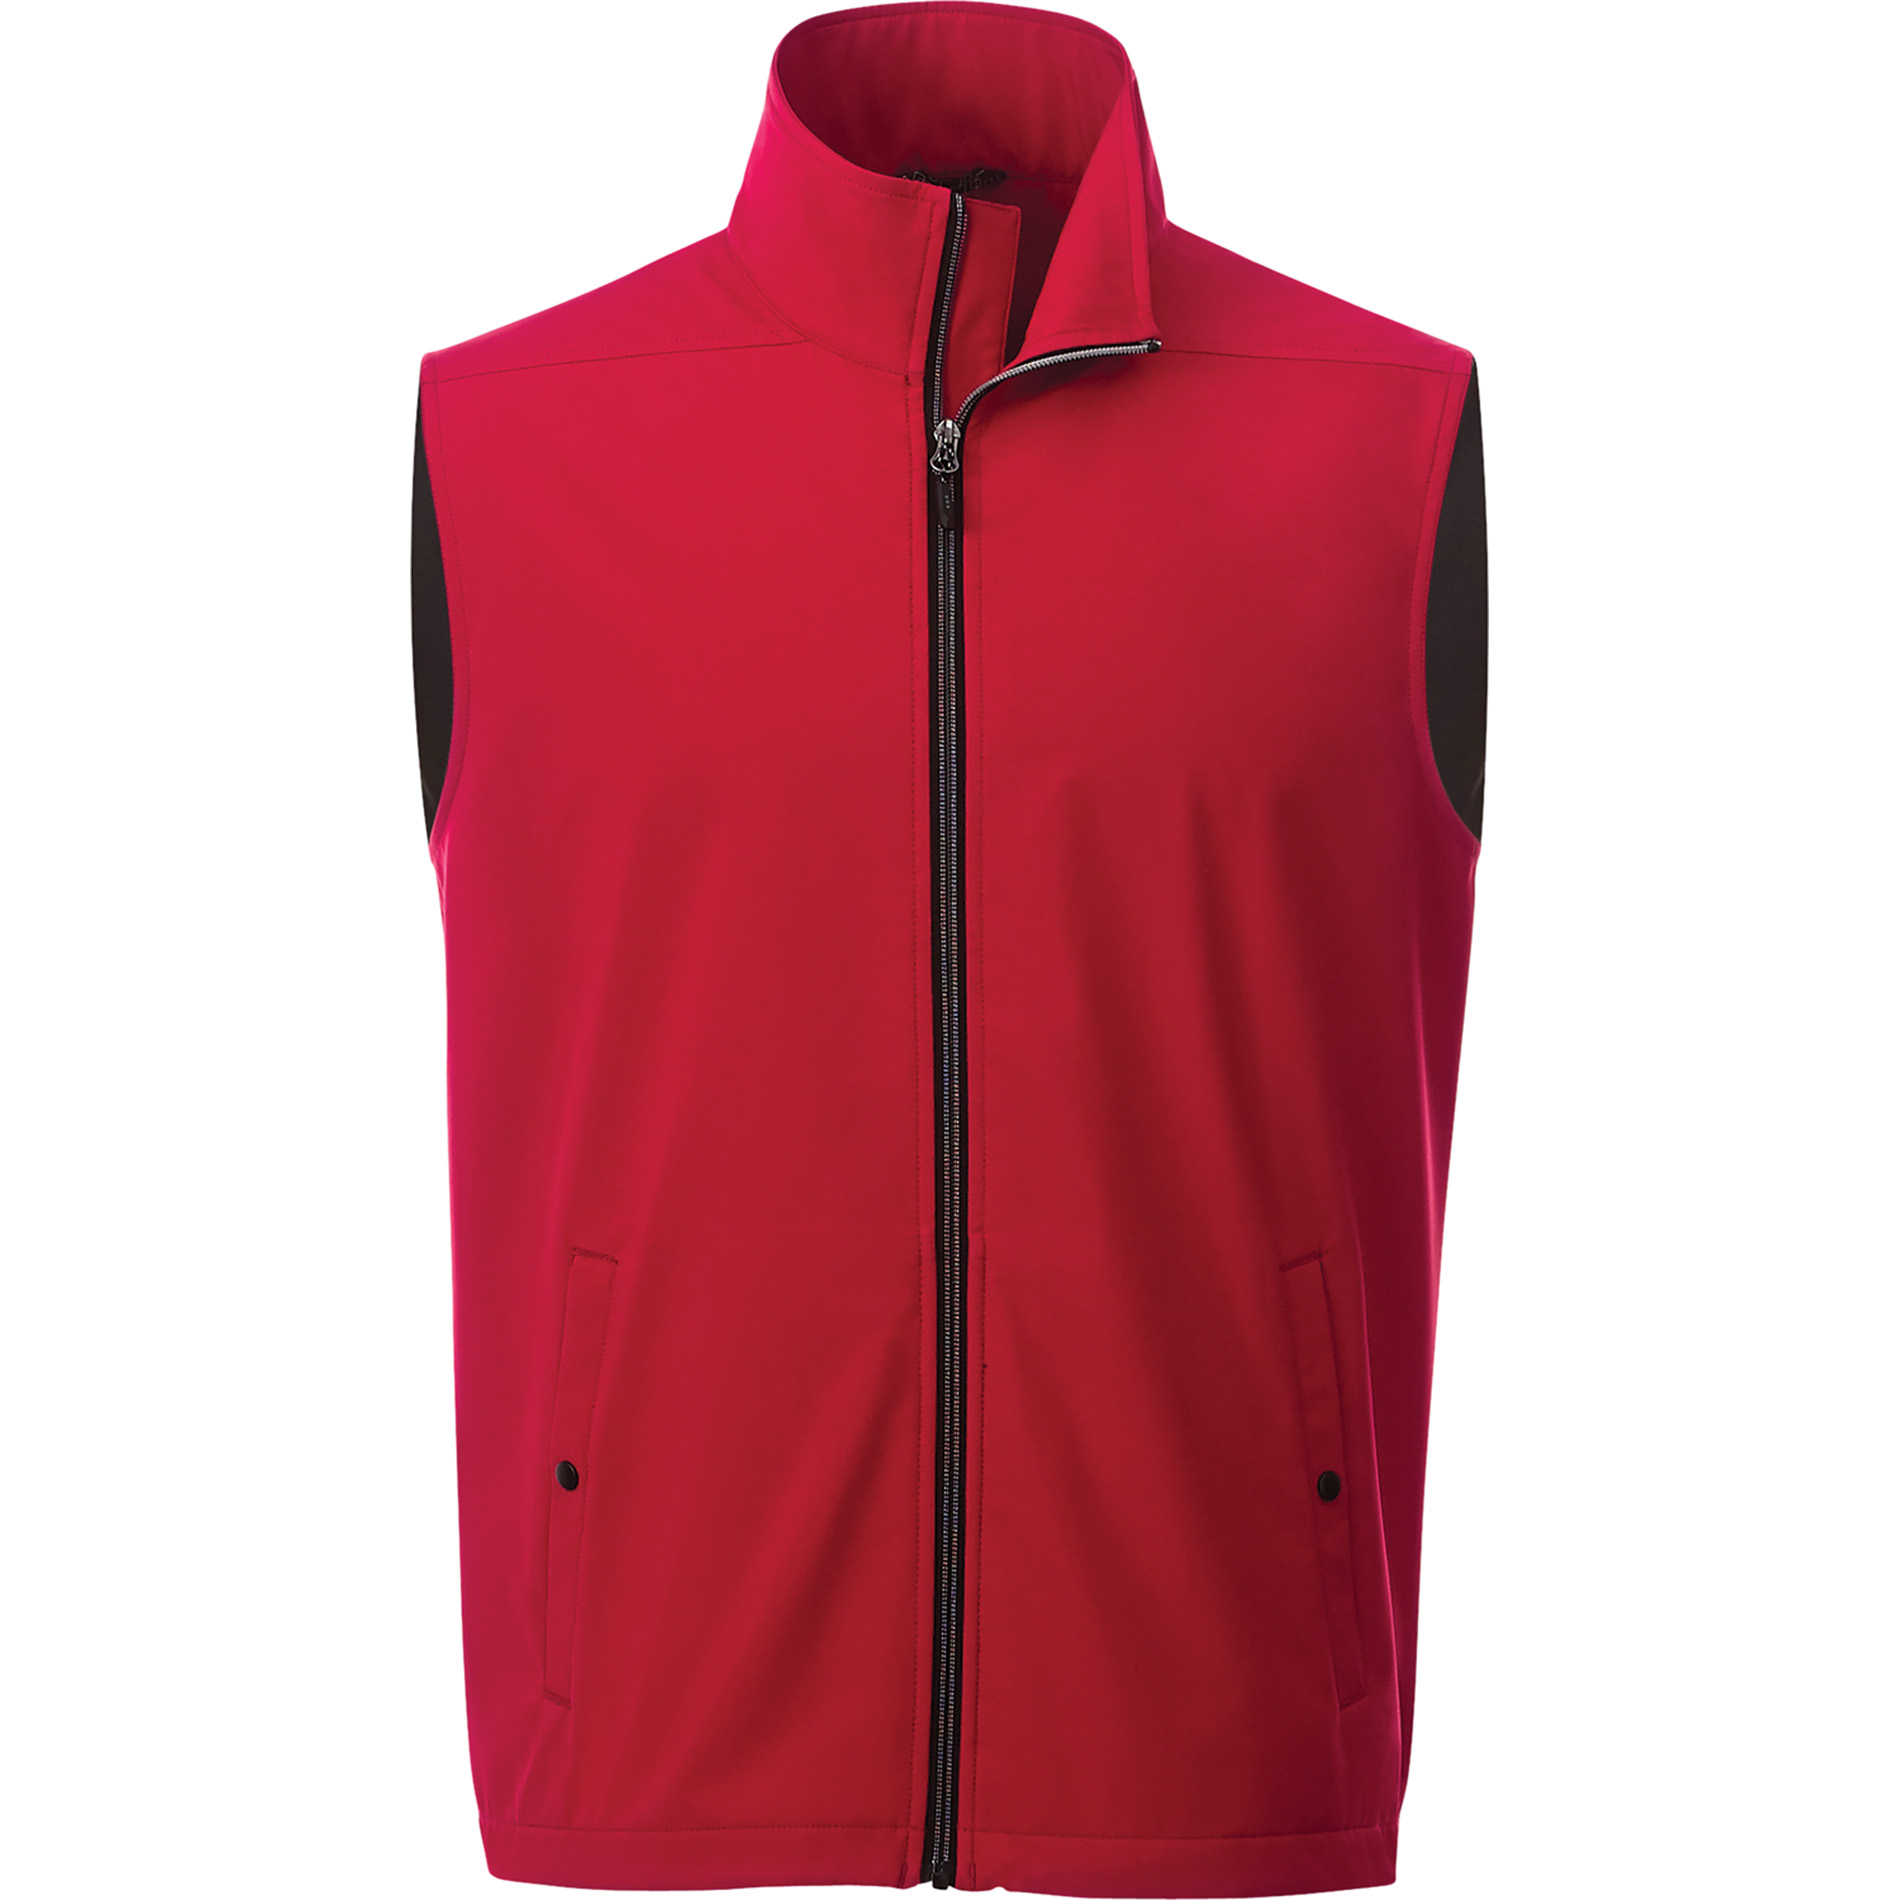 Elevate TM12504 - Men's Warlow Softshell Vest